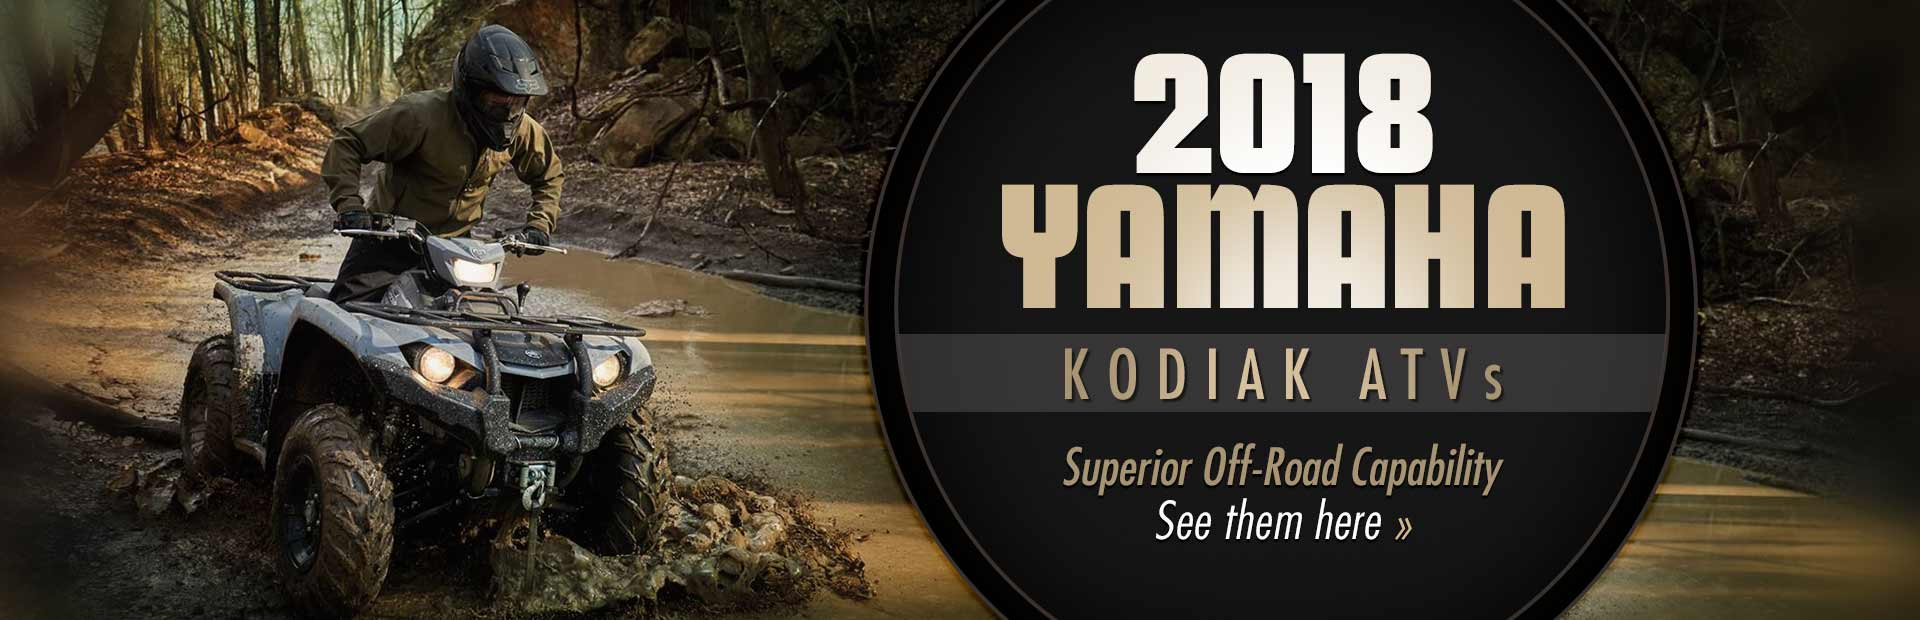 2018 Yamaha Kodiak ATVs: Click here to view the models.